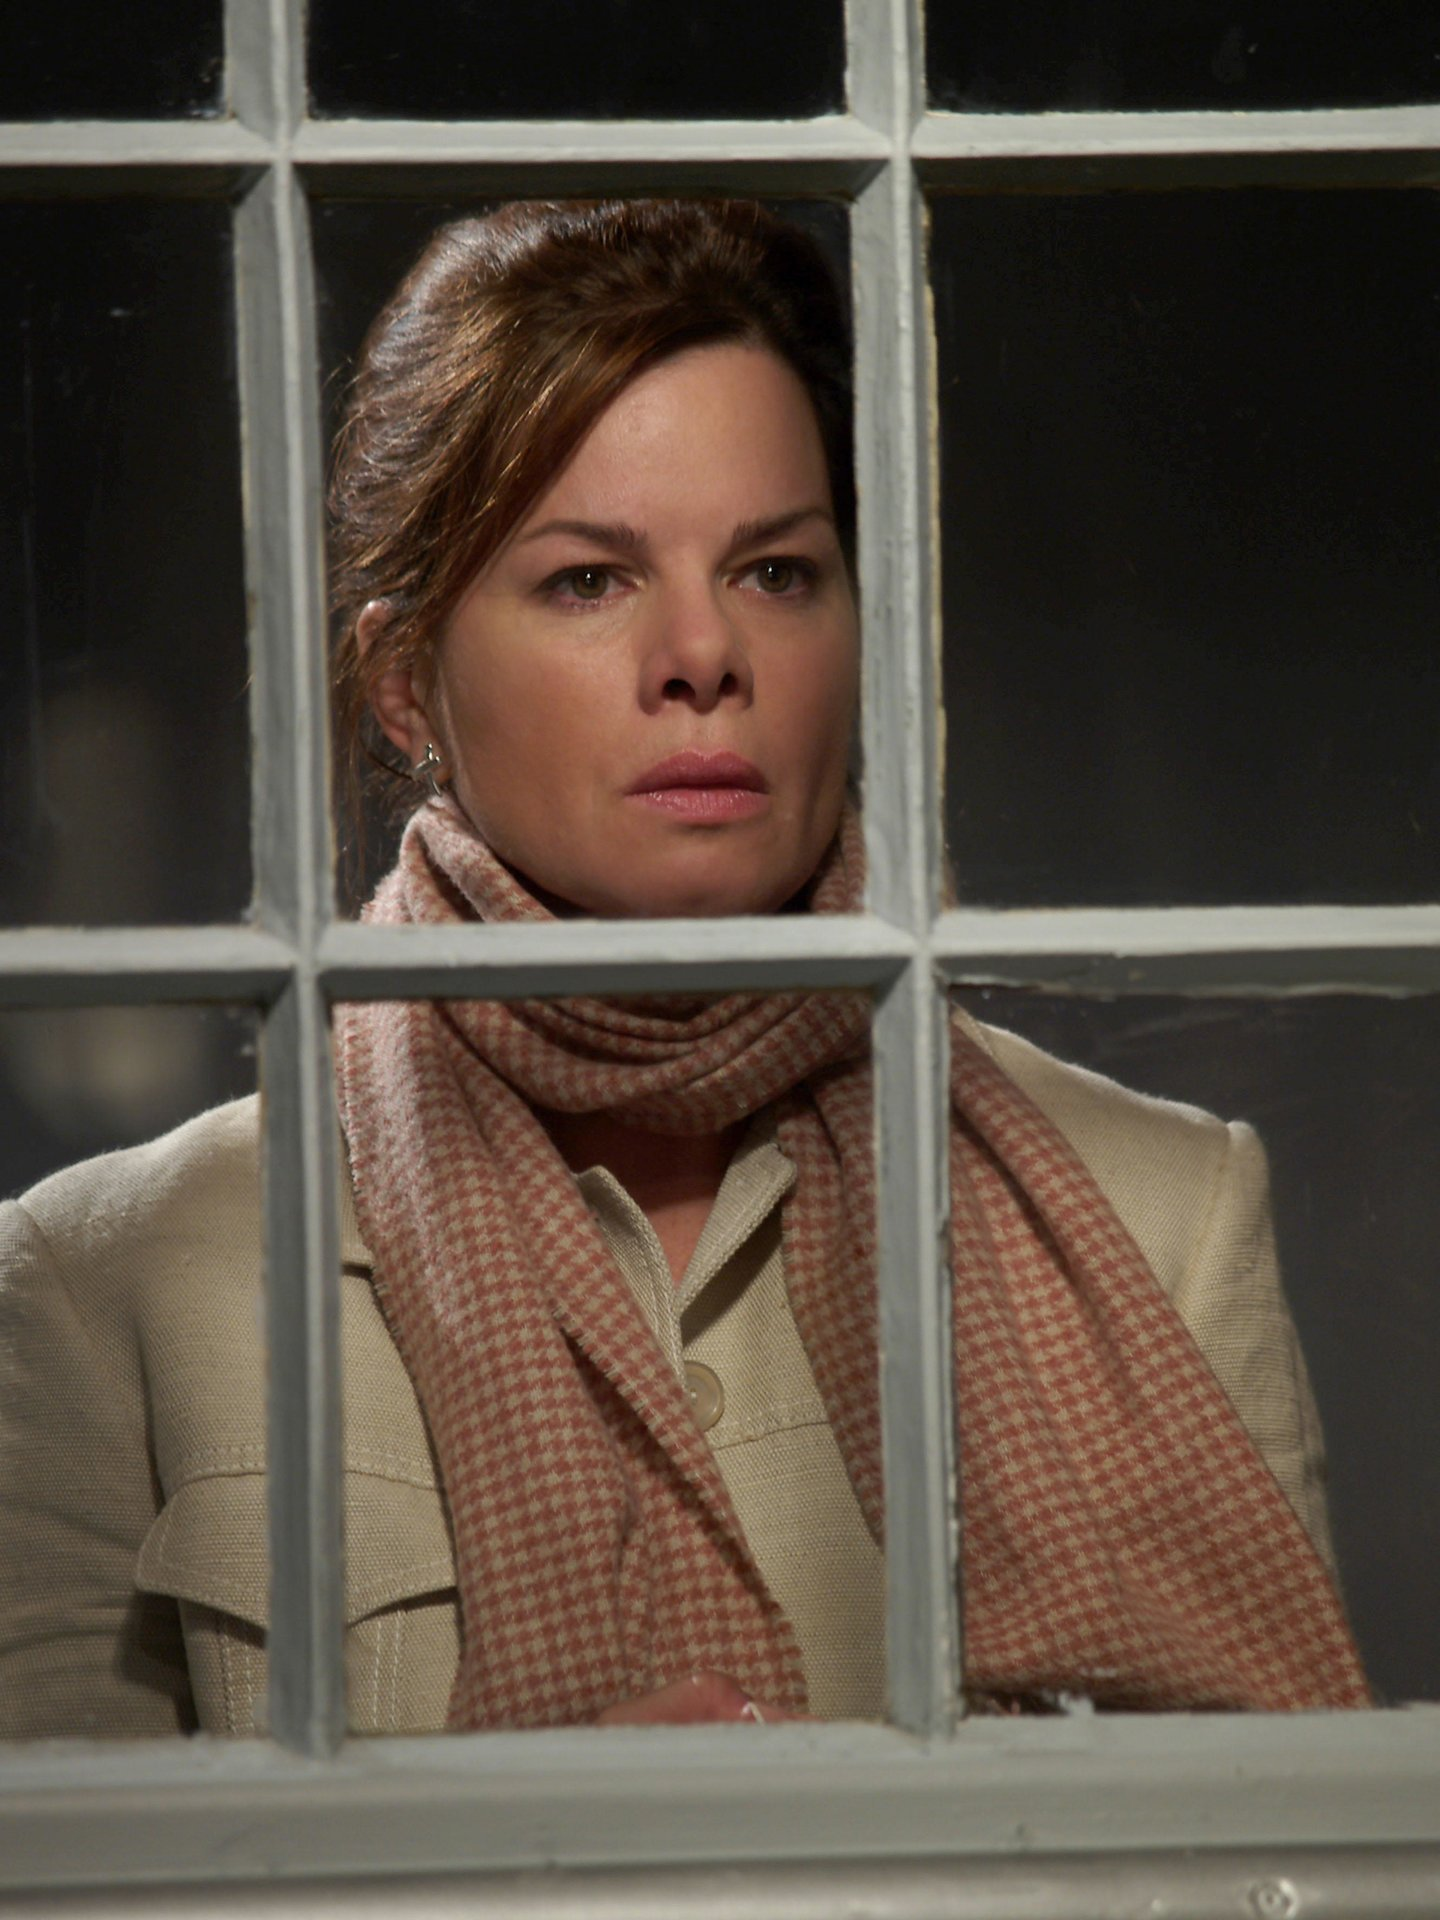 Marcia Gay Harden Unknown Blonde - after Words: Porn 88 fr